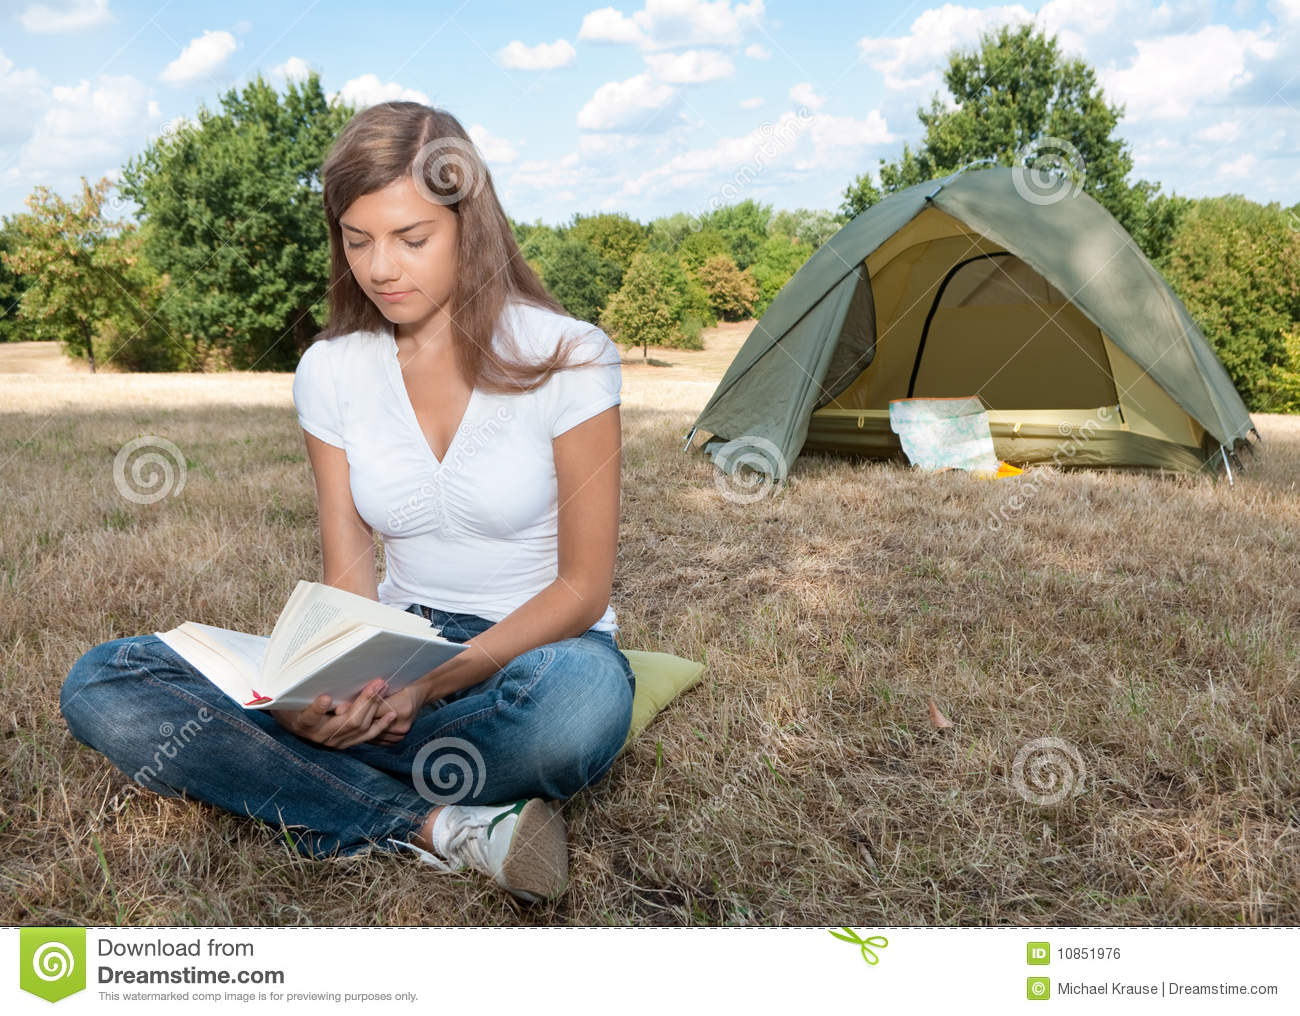 Woman tent c&ing book  sc 1 st  Dreamstime.com & Woman tent camping book stock photo. Image of portrait - 10851976